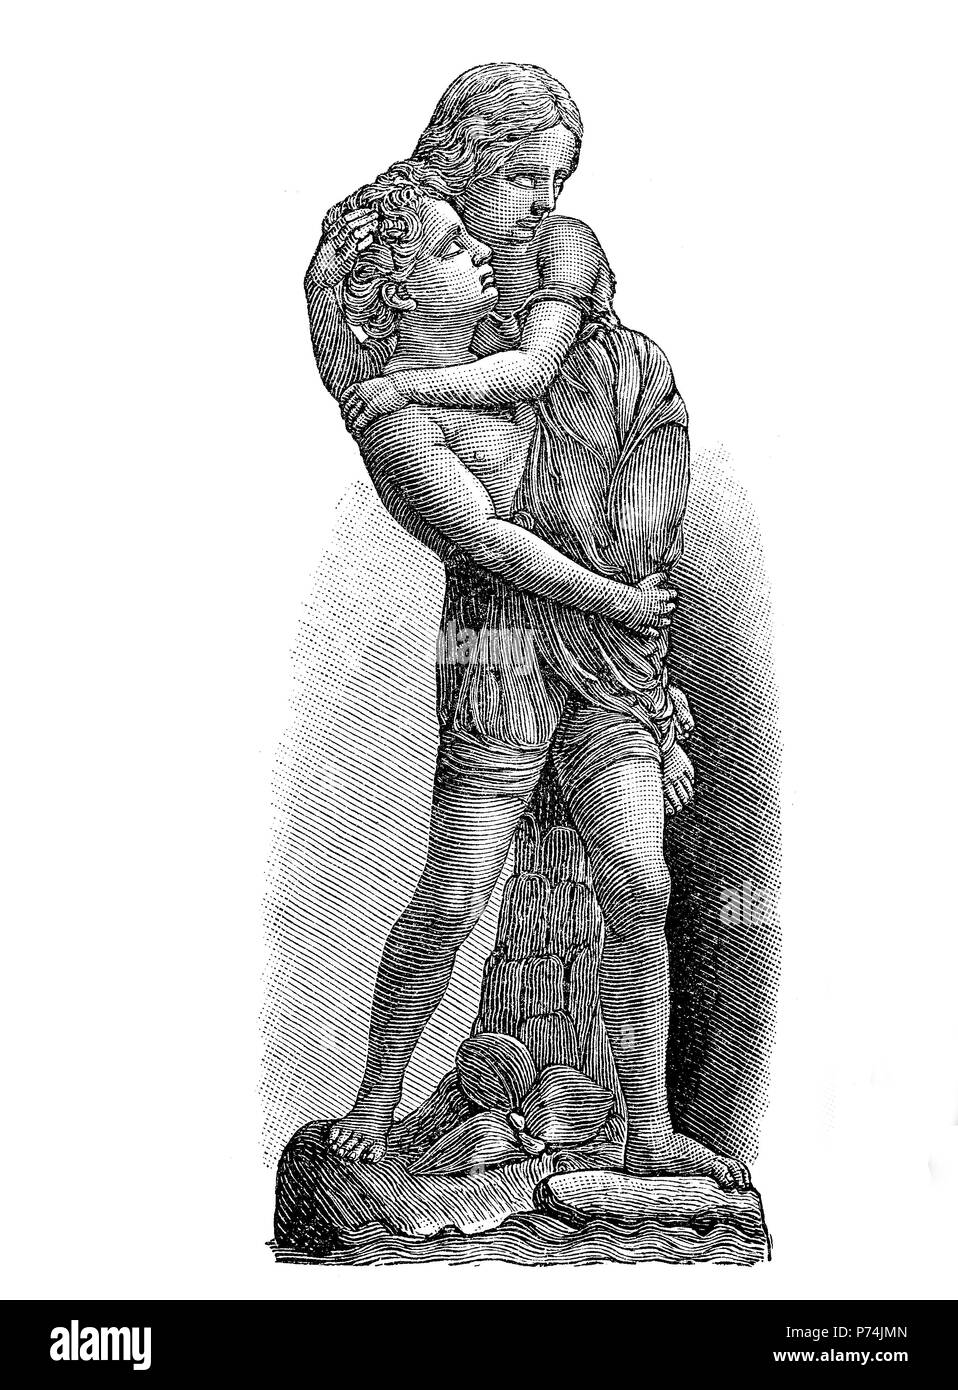 Paul and Viginia, by W.C. Marshall, digital improved reproduction from an original print from the year 1881 Stock Photo